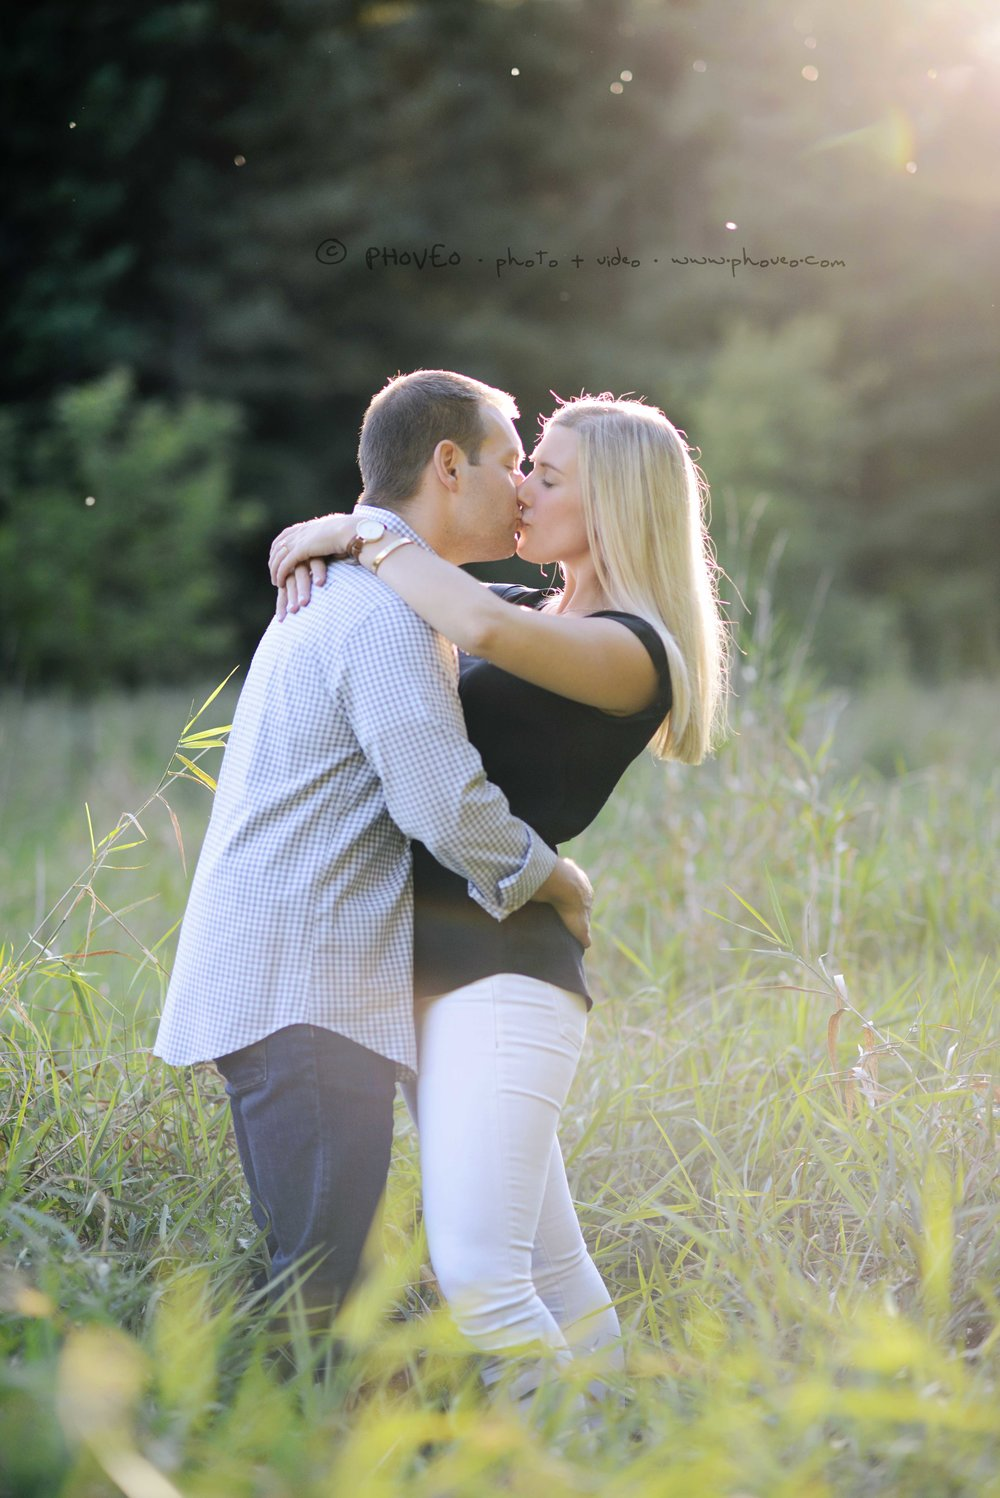 WM_20170917_Kelsie+Ryan_46.jpg